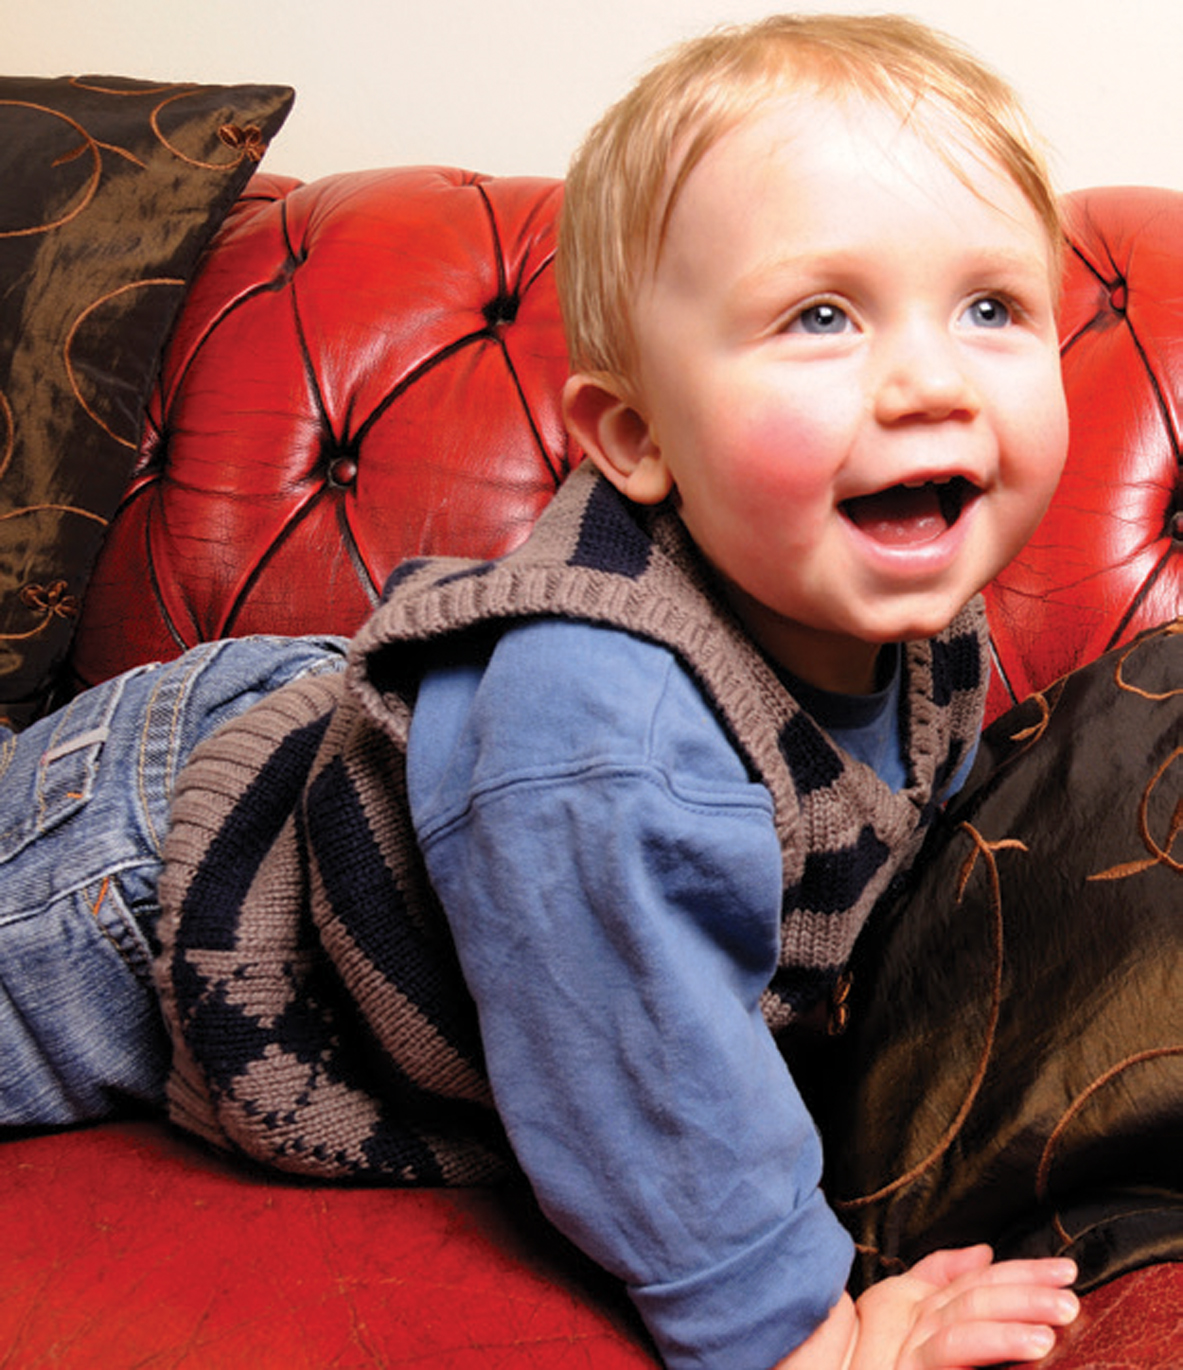 Small Boy on Sofa